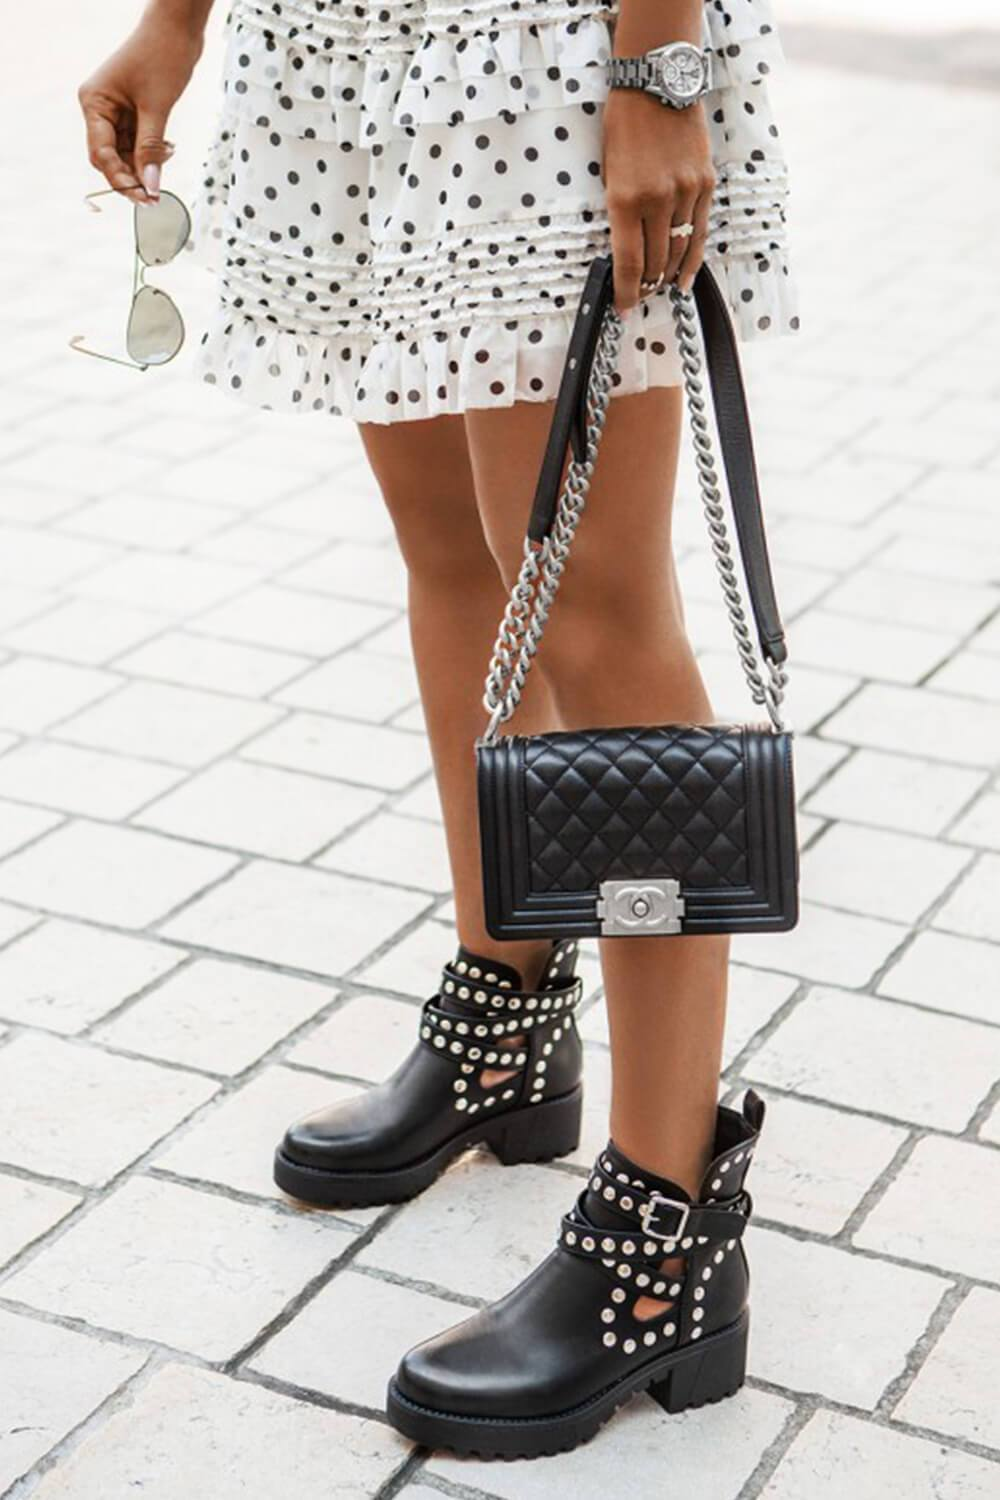 Black Stud Strappy Buckle Cut-Out Chunky Soled Boots